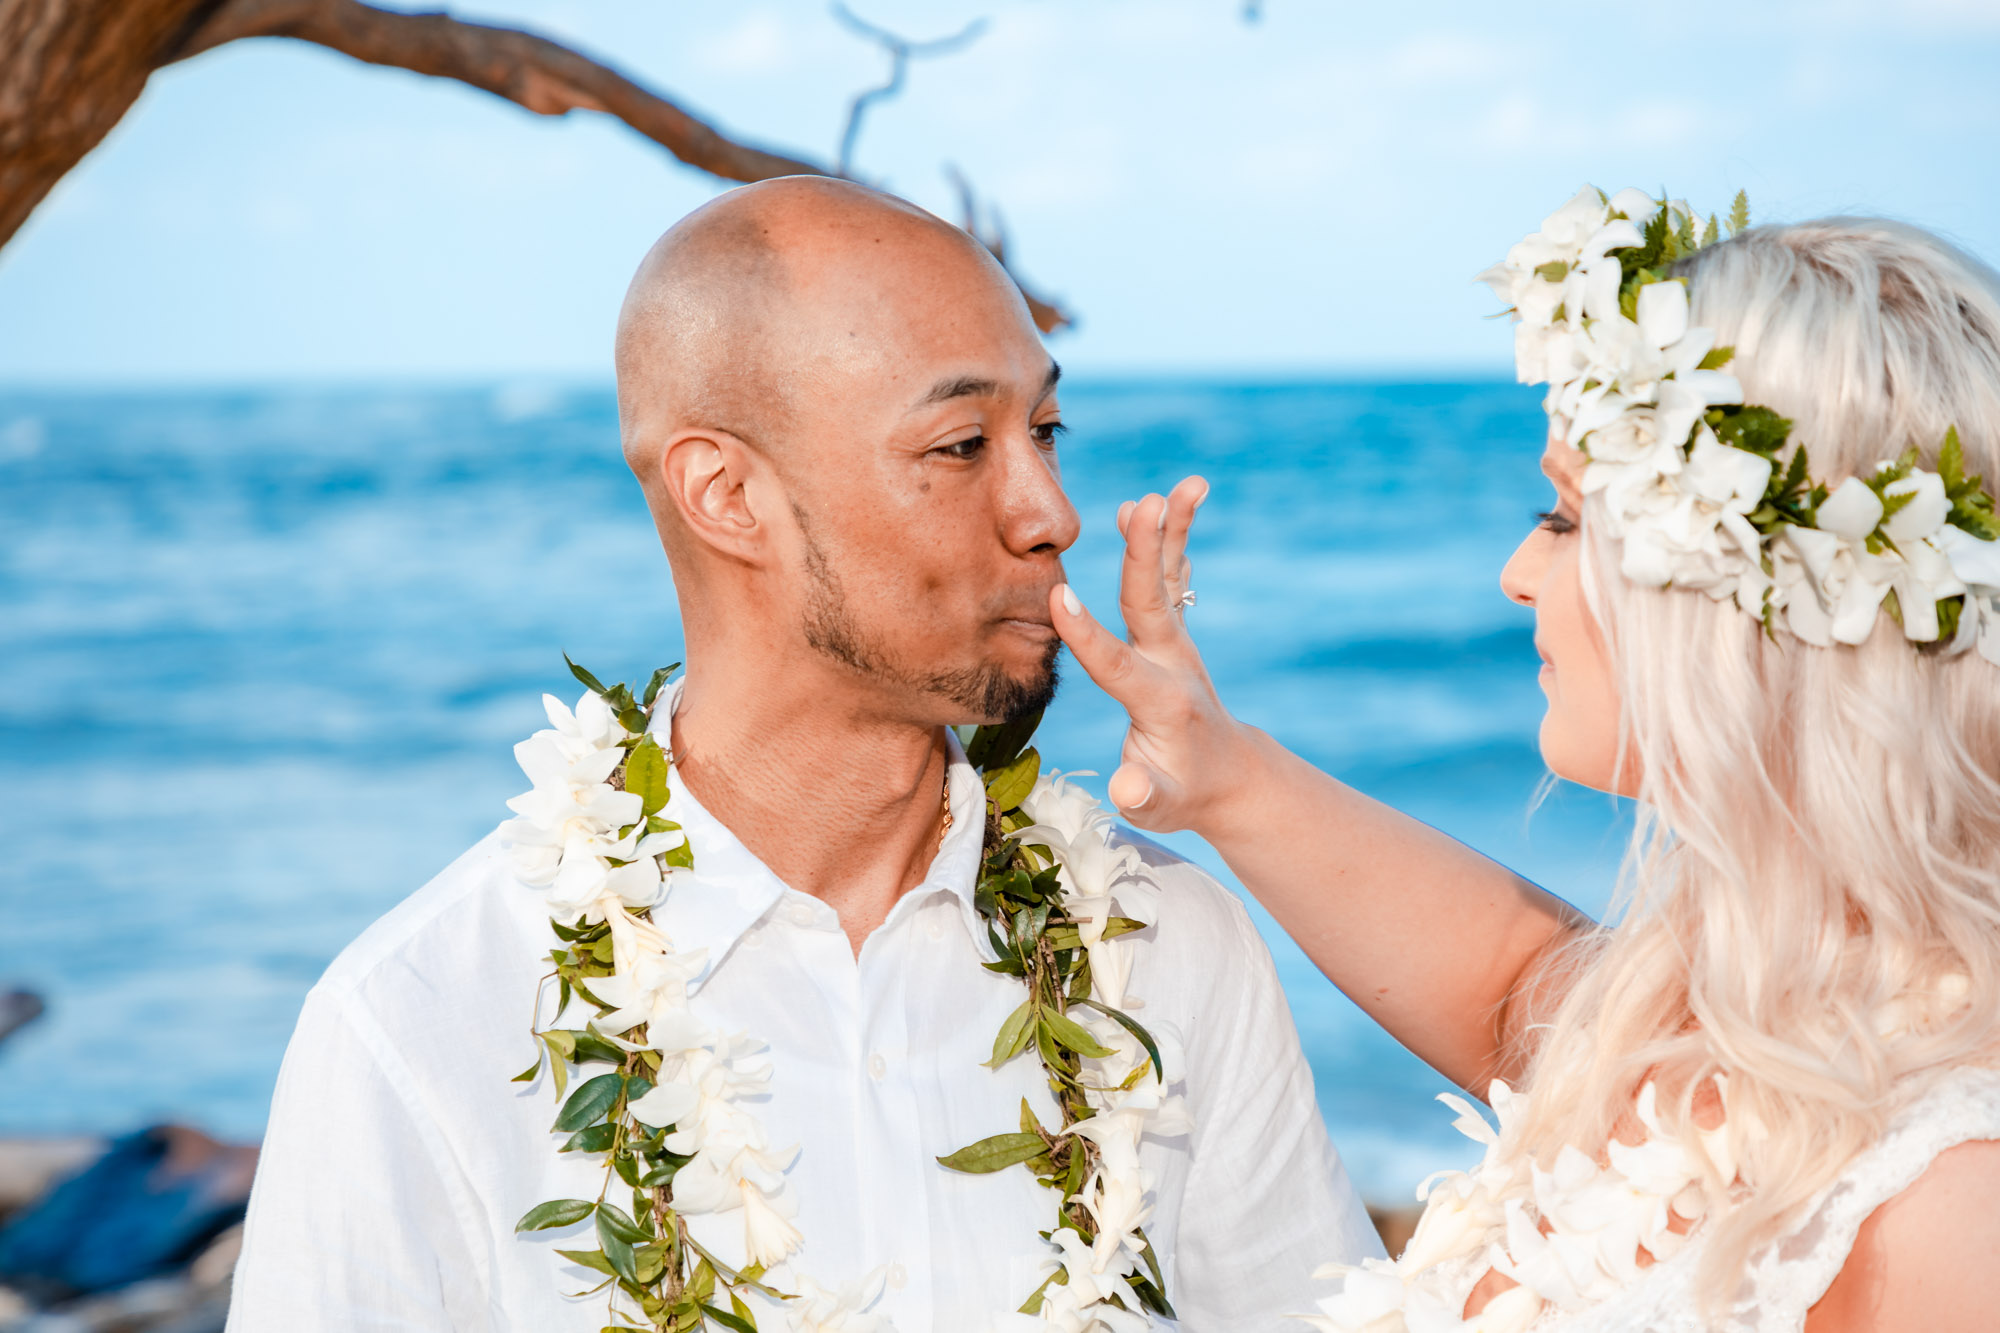 hawaii bride and groom wedding ceremony